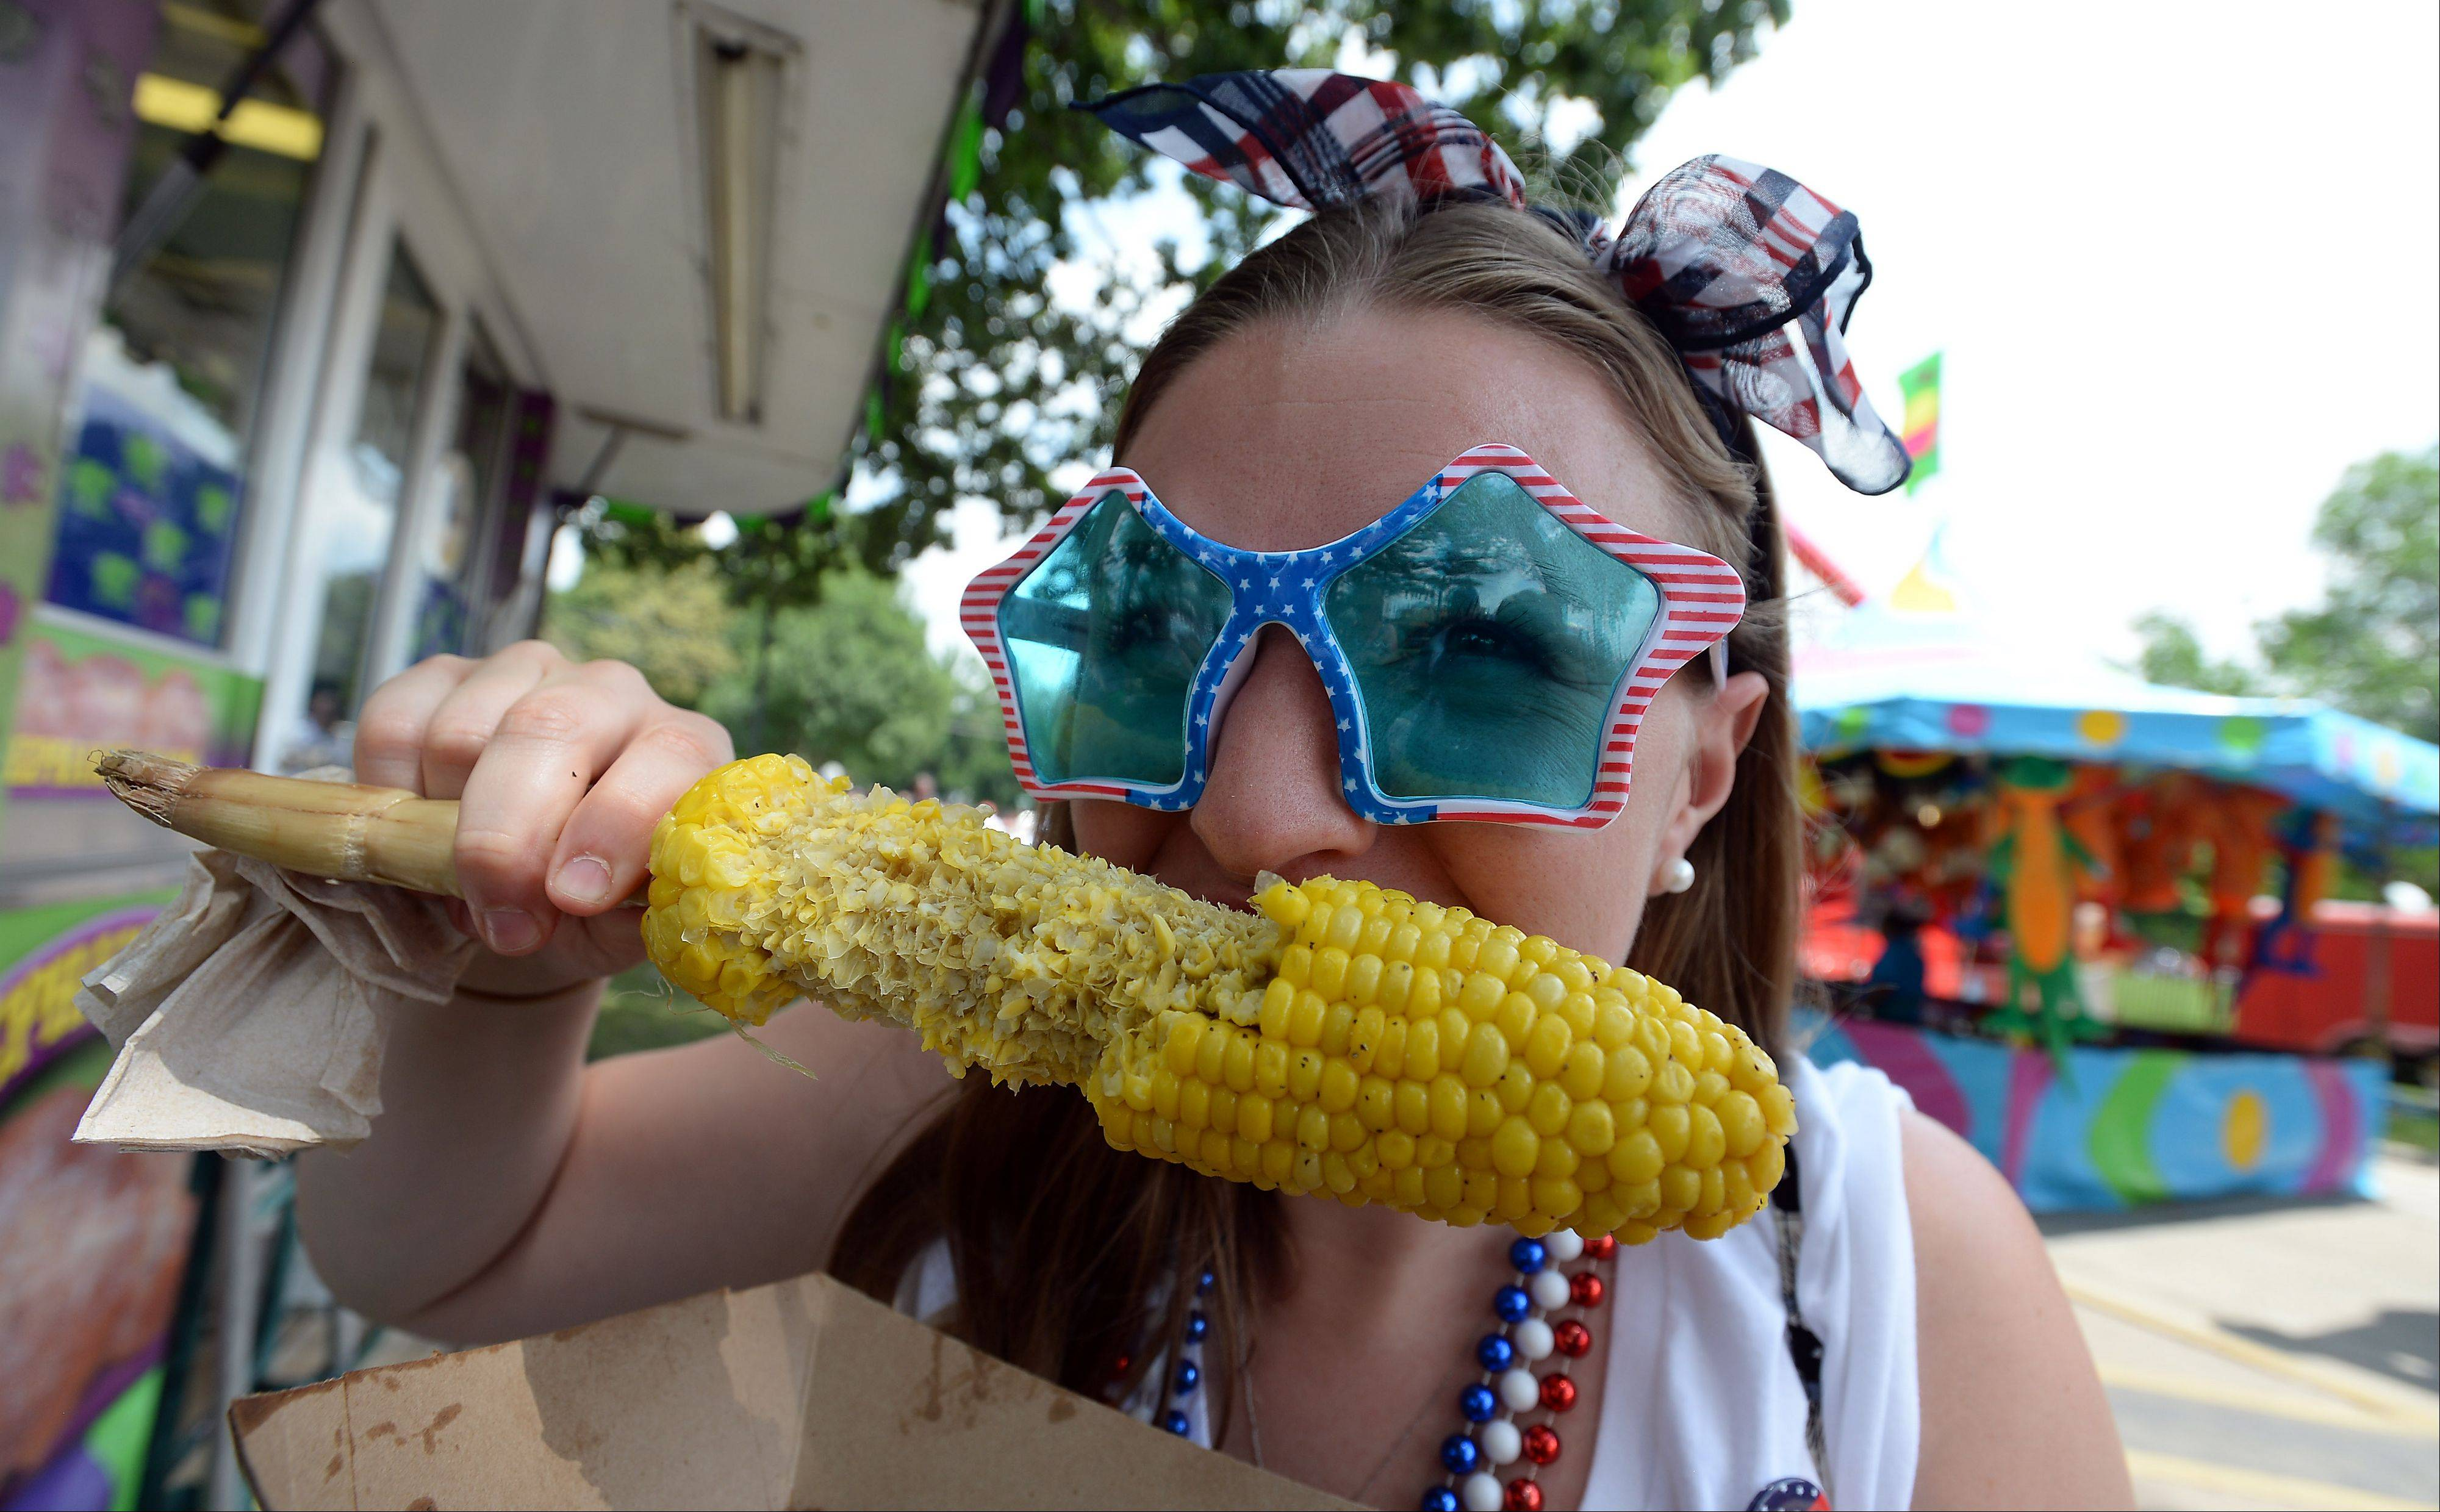 Frontier Days festivities kicks off on the Fourth of July for Lauren Schenkel, 23, of Arlington Heights seeing stars while she polished off a buttery ear of corn.